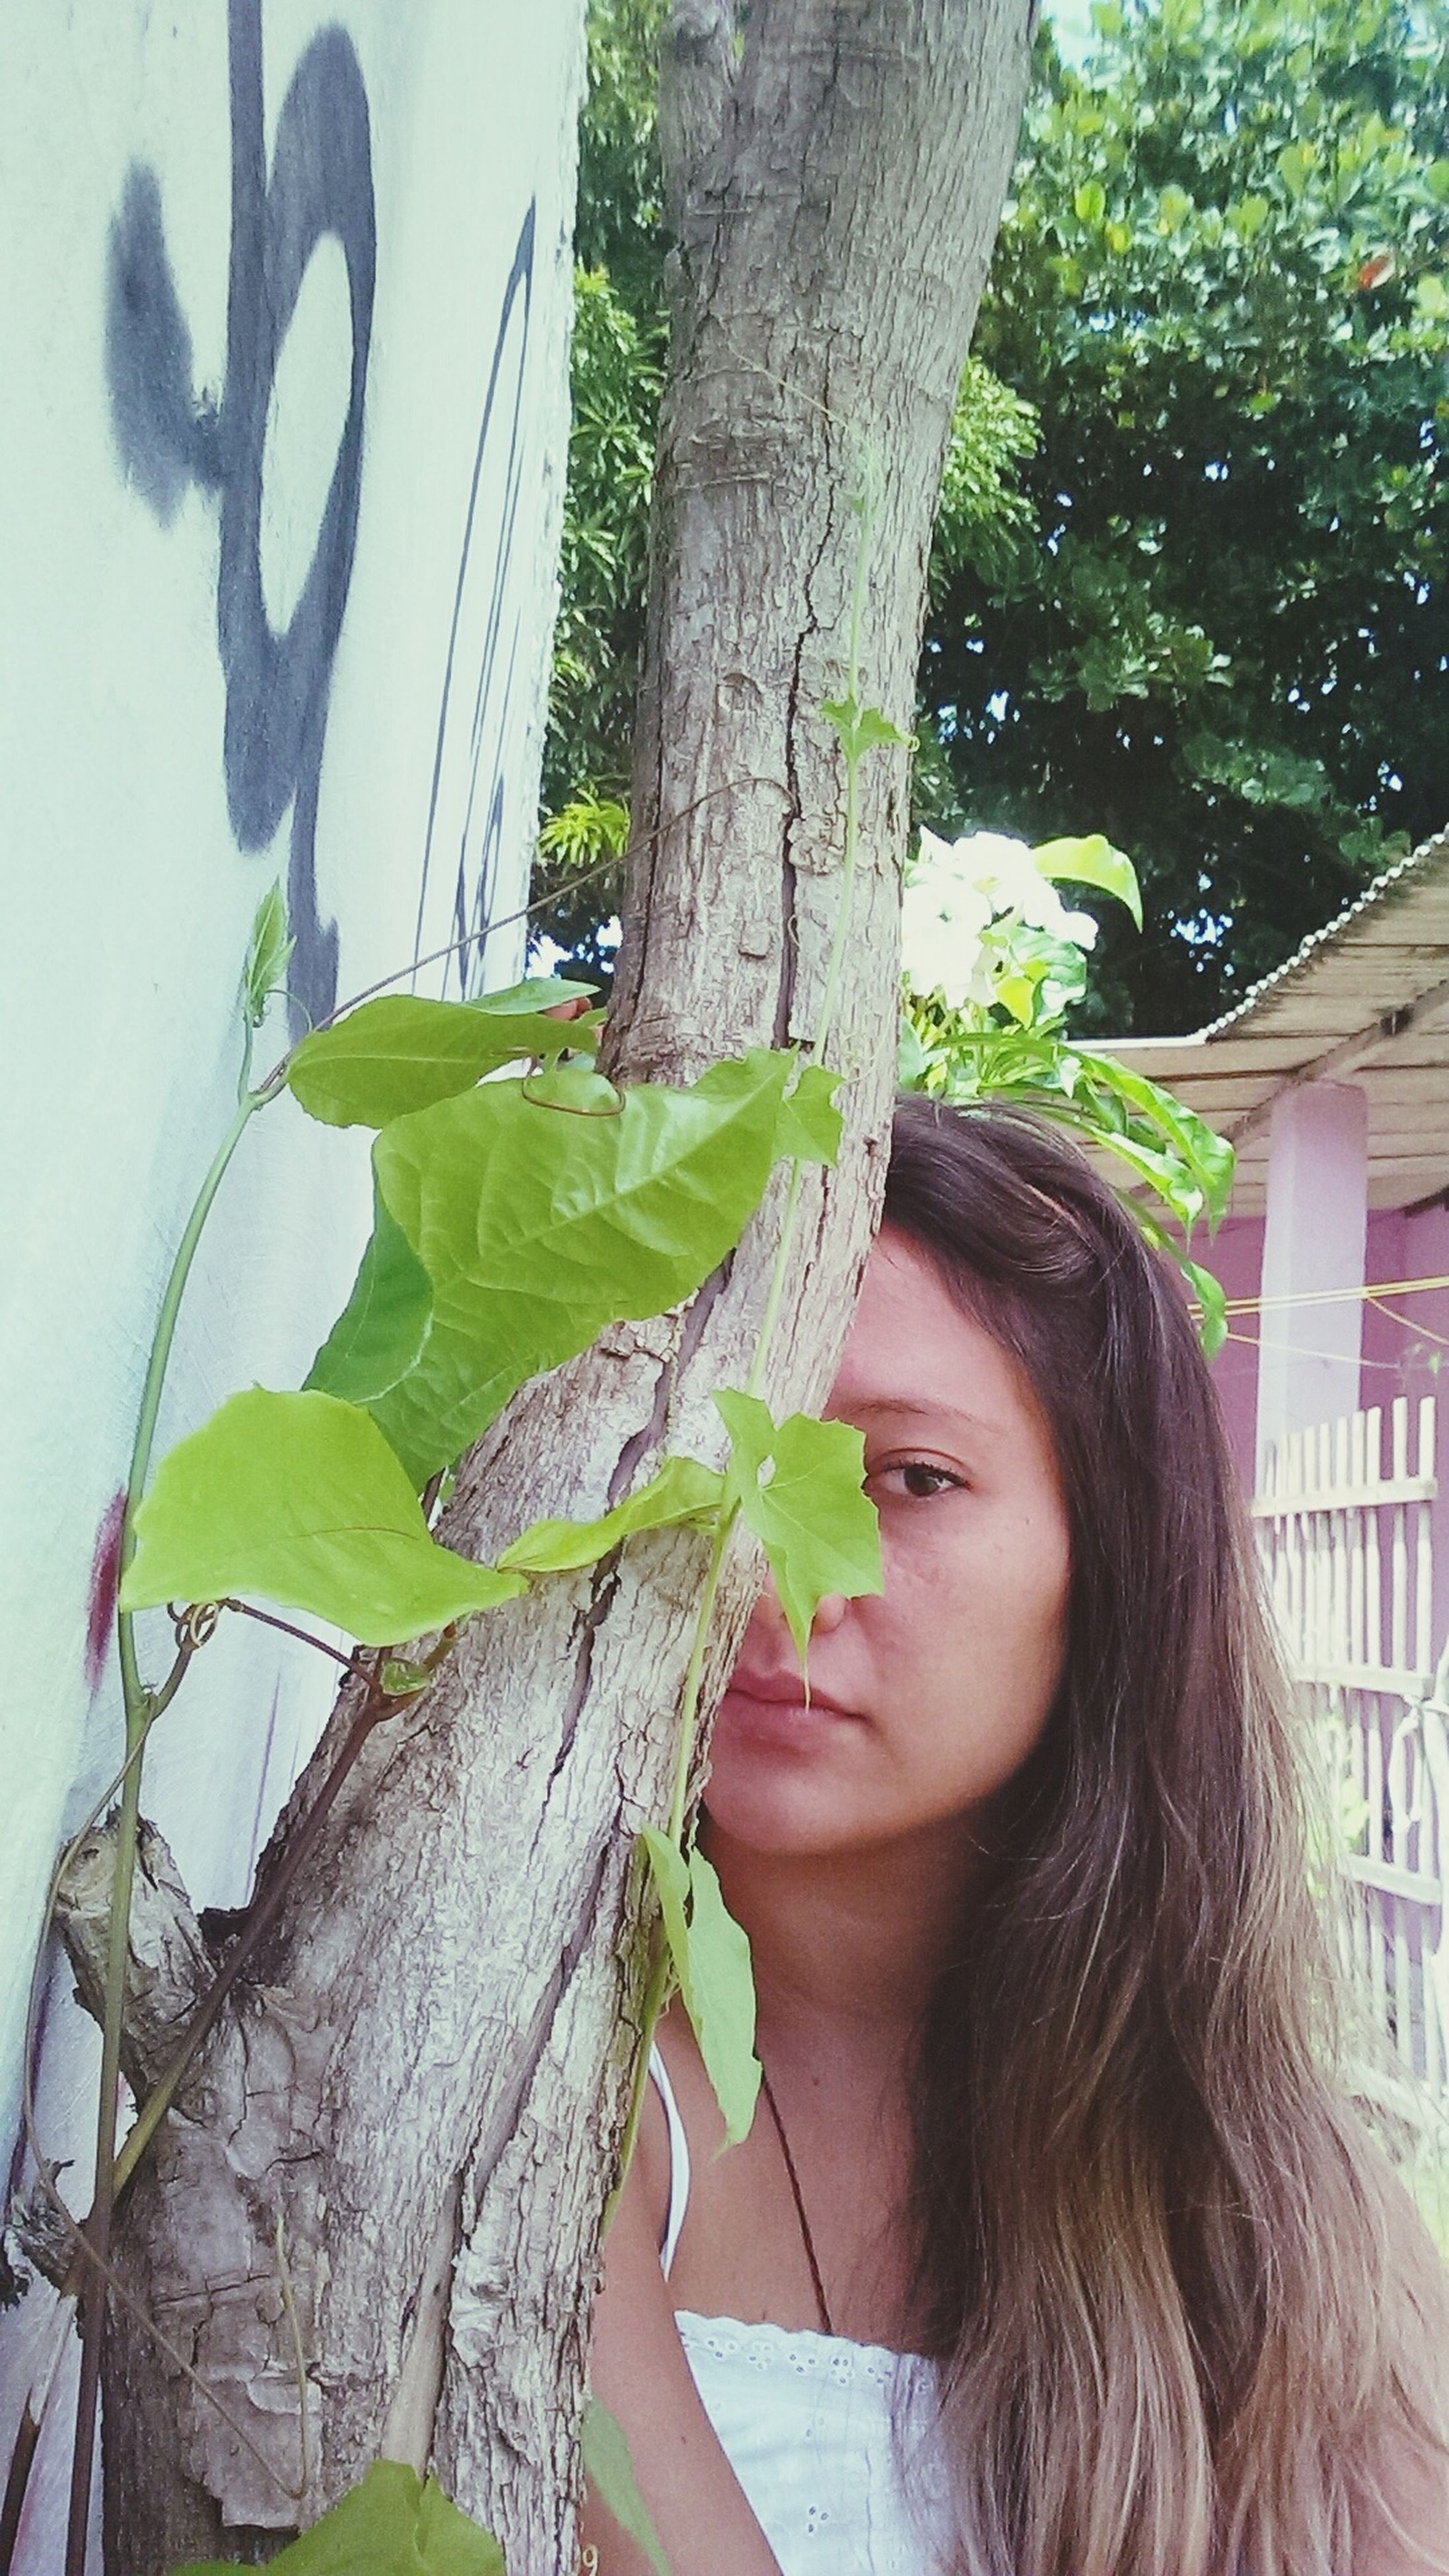 tree, lifestyles, leisure activity, holding, leaf, tree trunk, young women, growth, plant, day, person, focus on foreground, branch, long hair, young adult, outdoors, front view, close-up